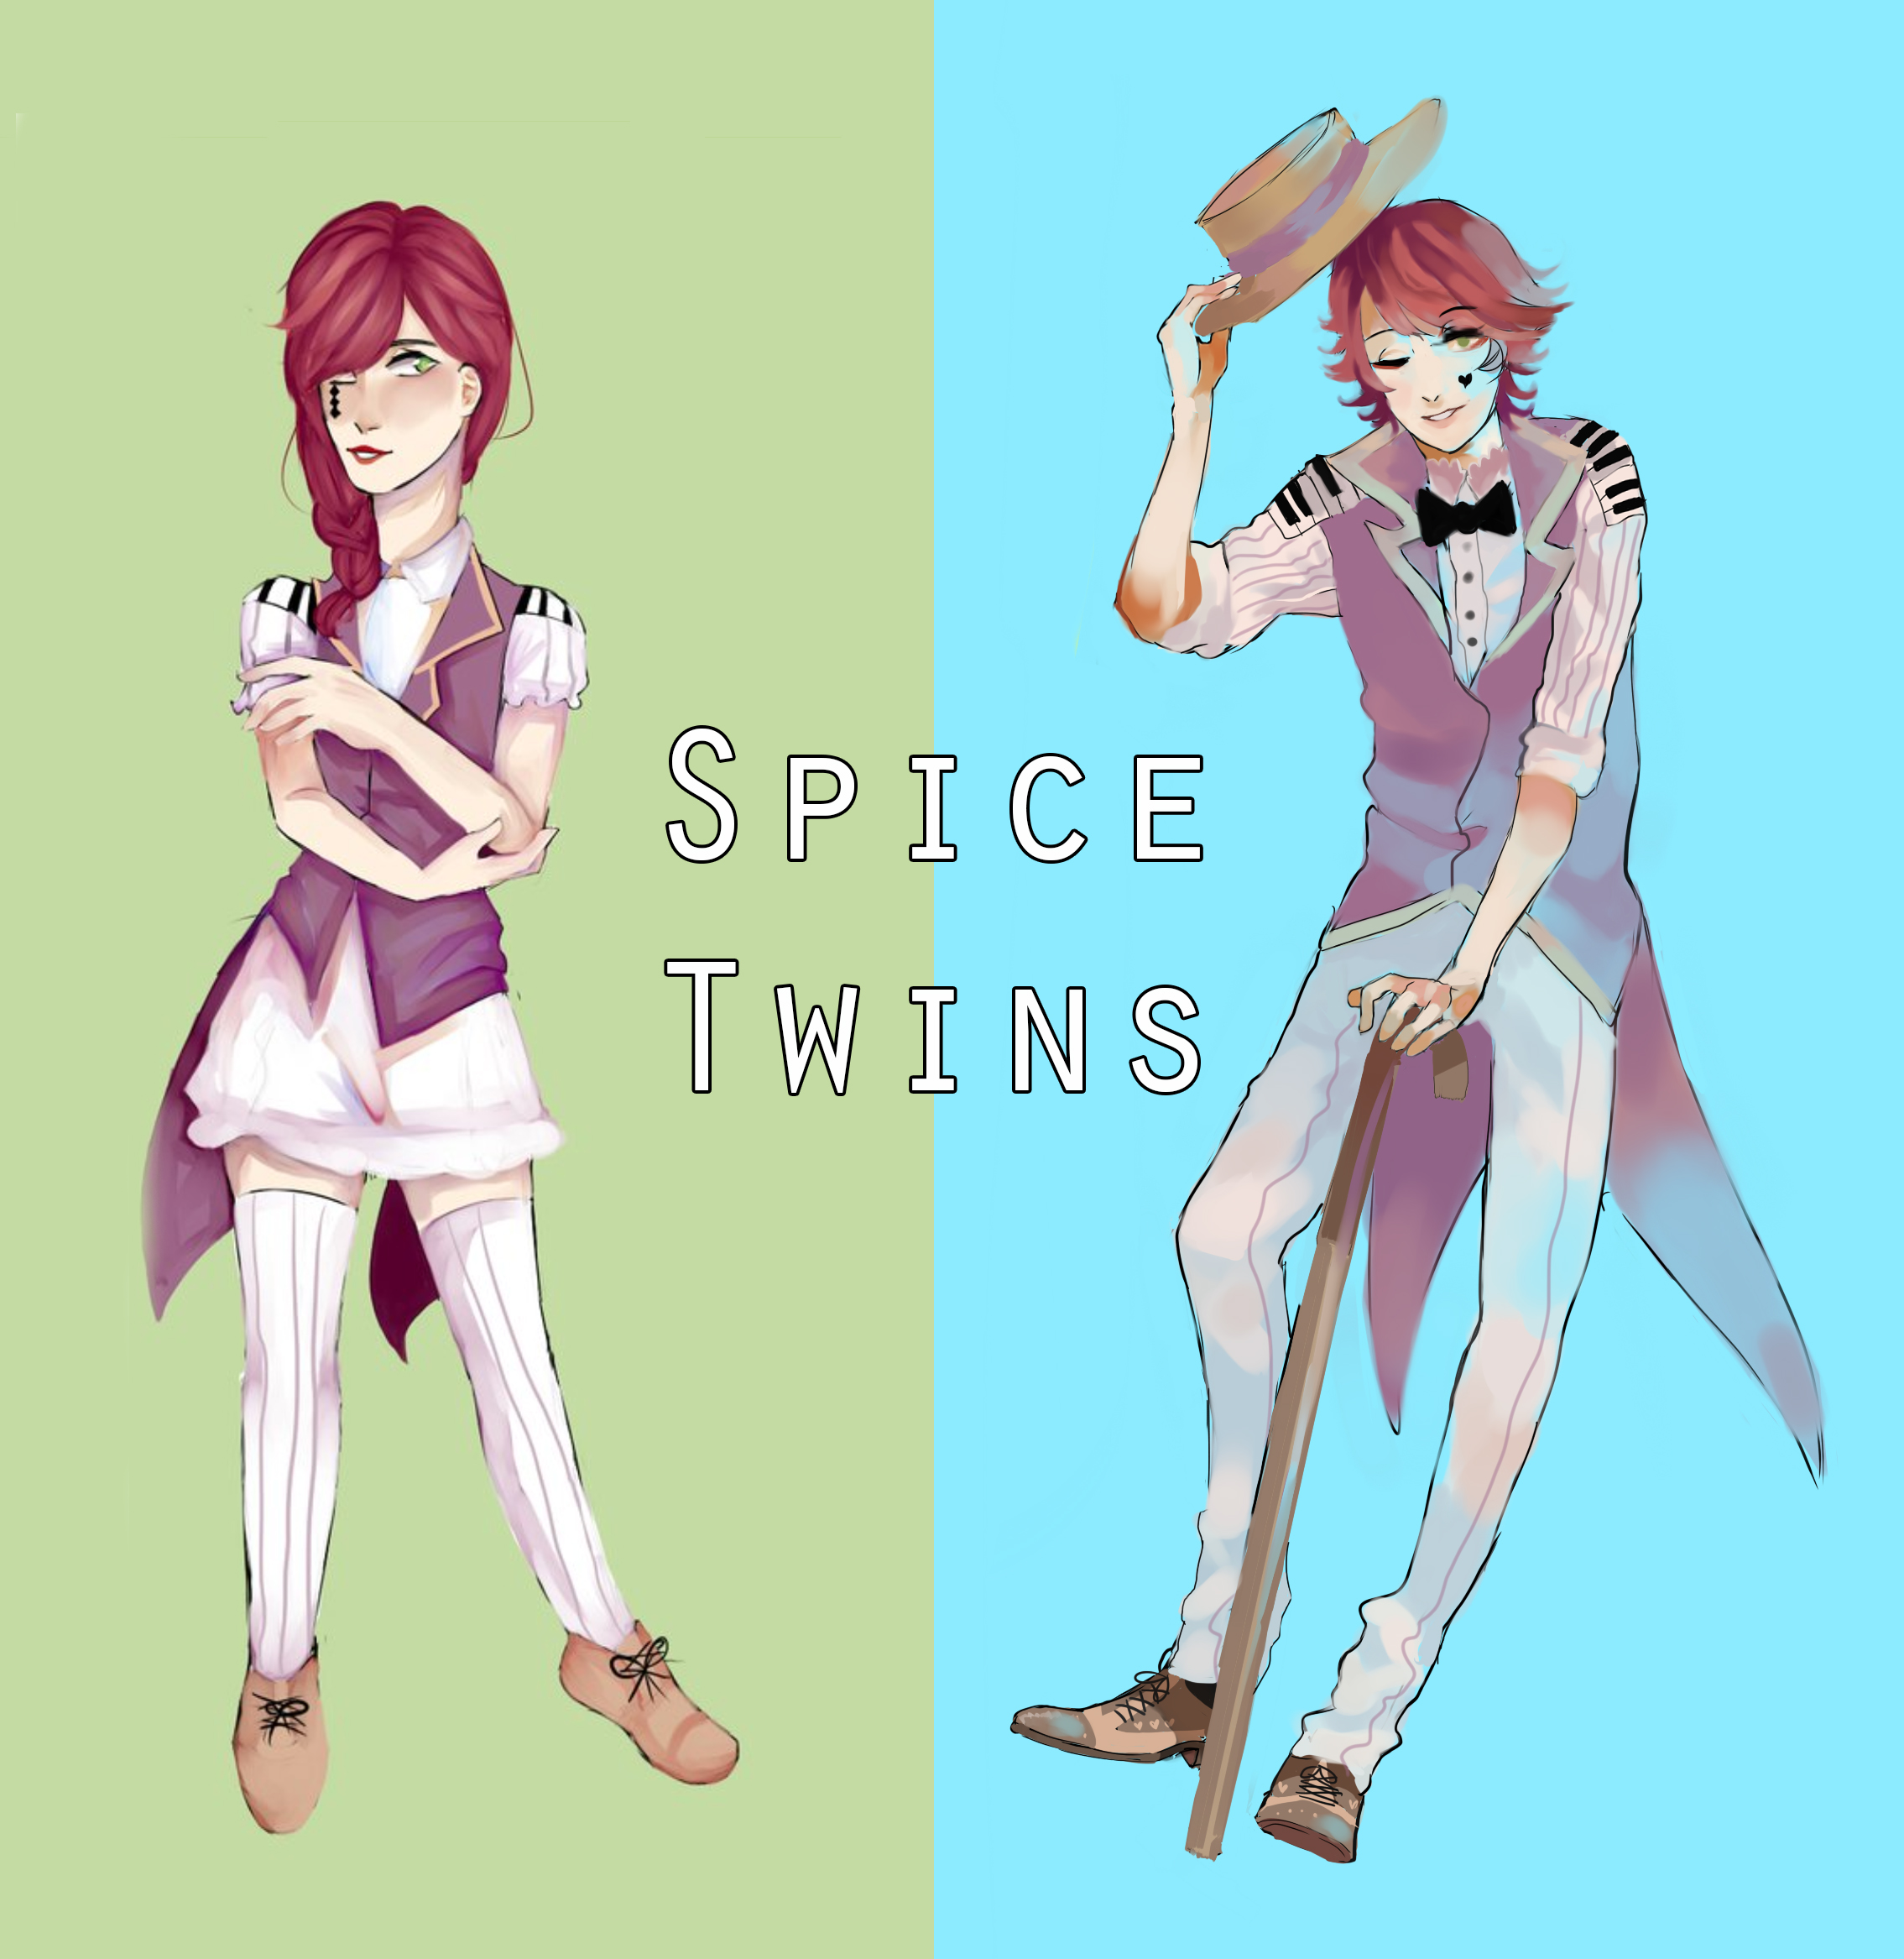 Spice twins pic 73